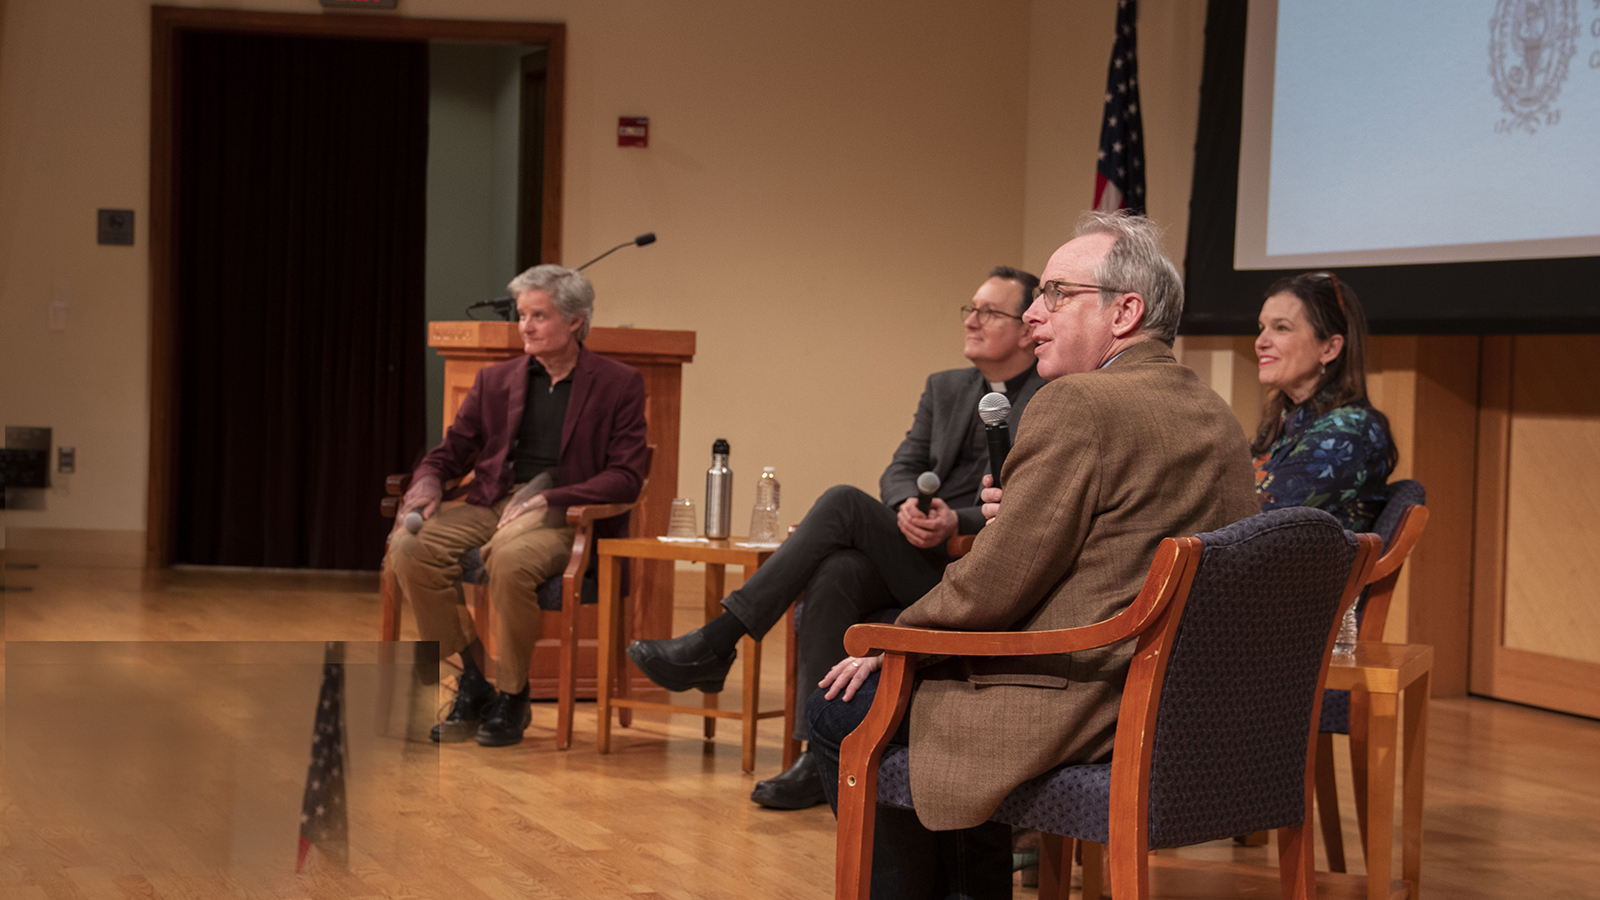 Rev. Mark Bosco, S.J., Elizabeth Coffman, Paul Elie, and Ted Hardin take a question from the audience.